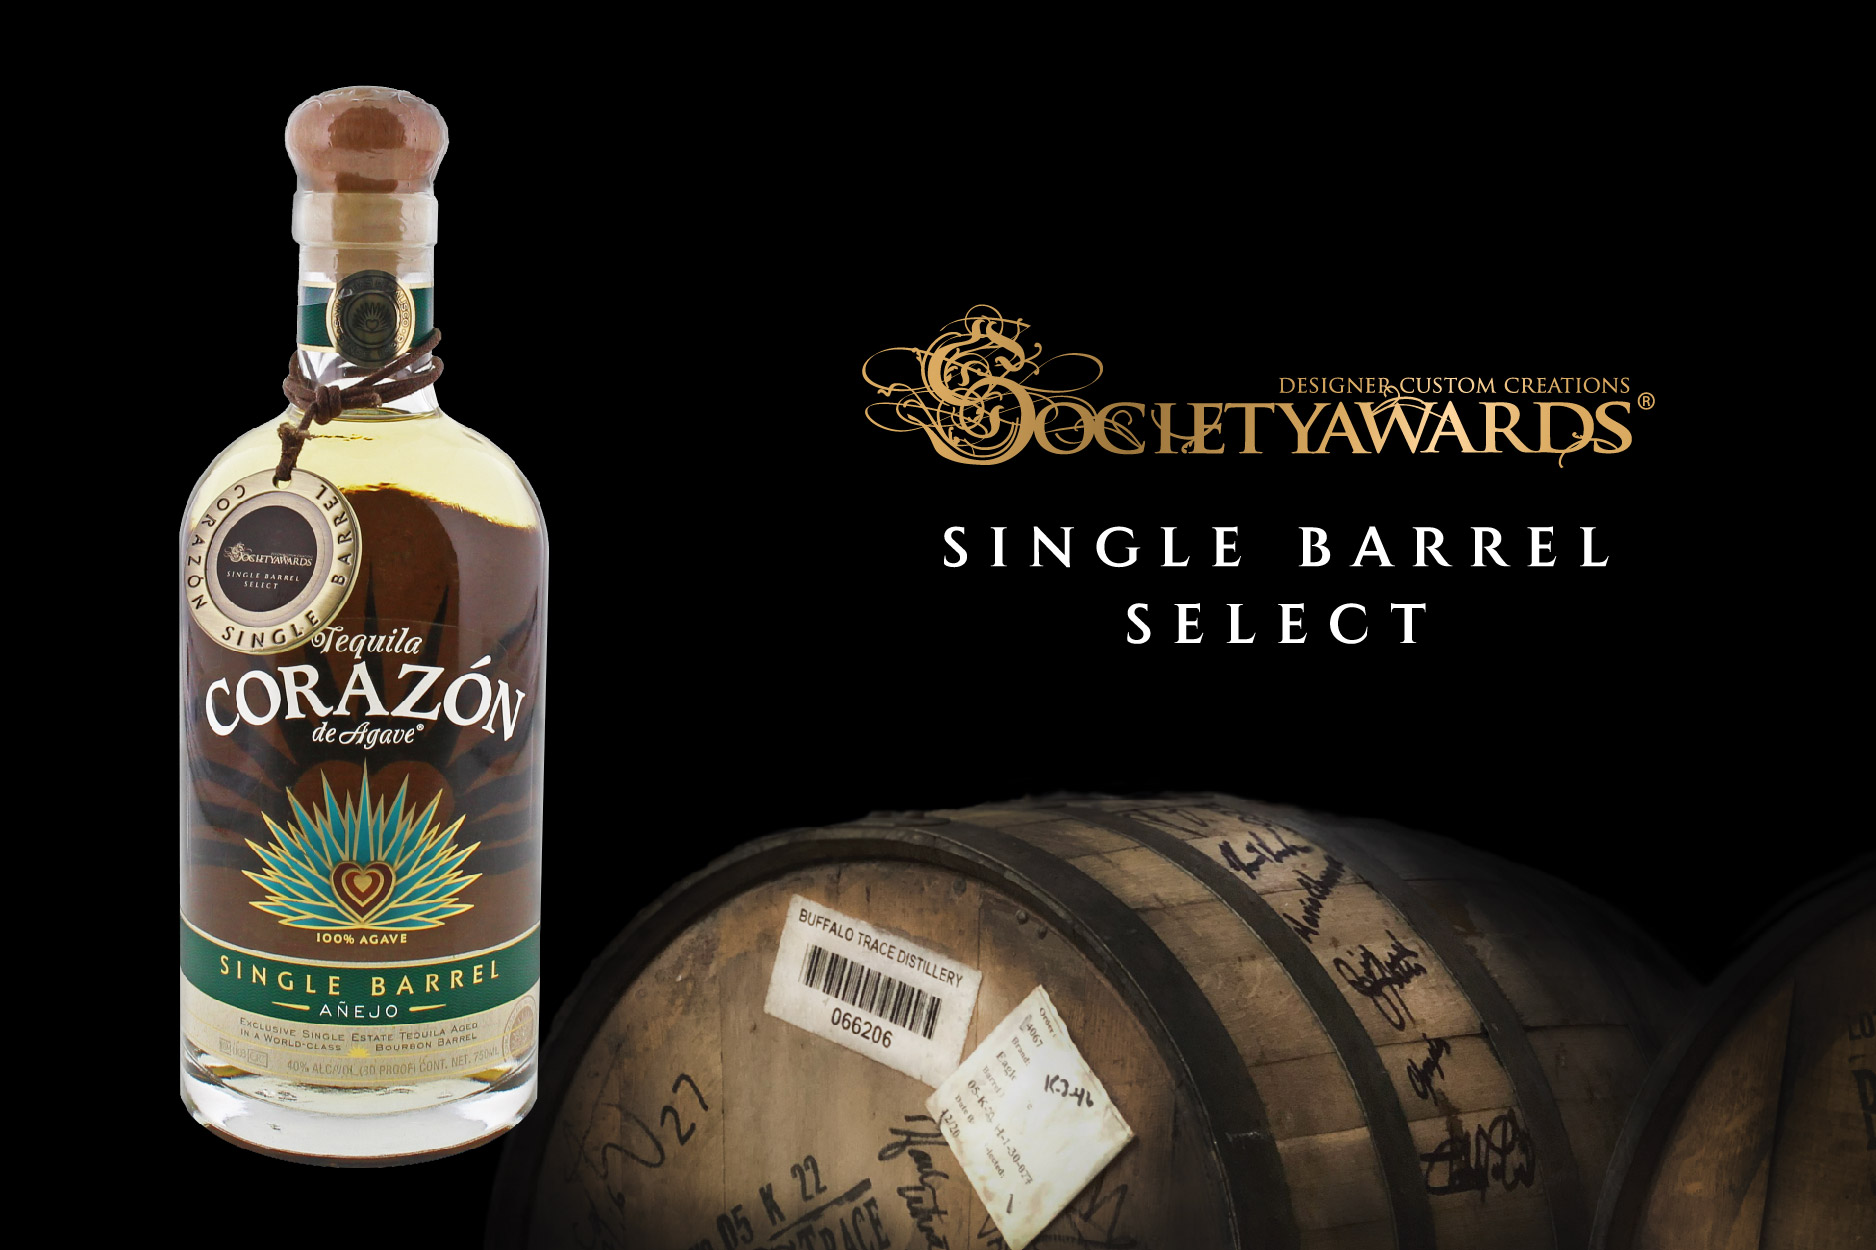 Bourbon Barrel Aged Añejo Tequila from Society Awards